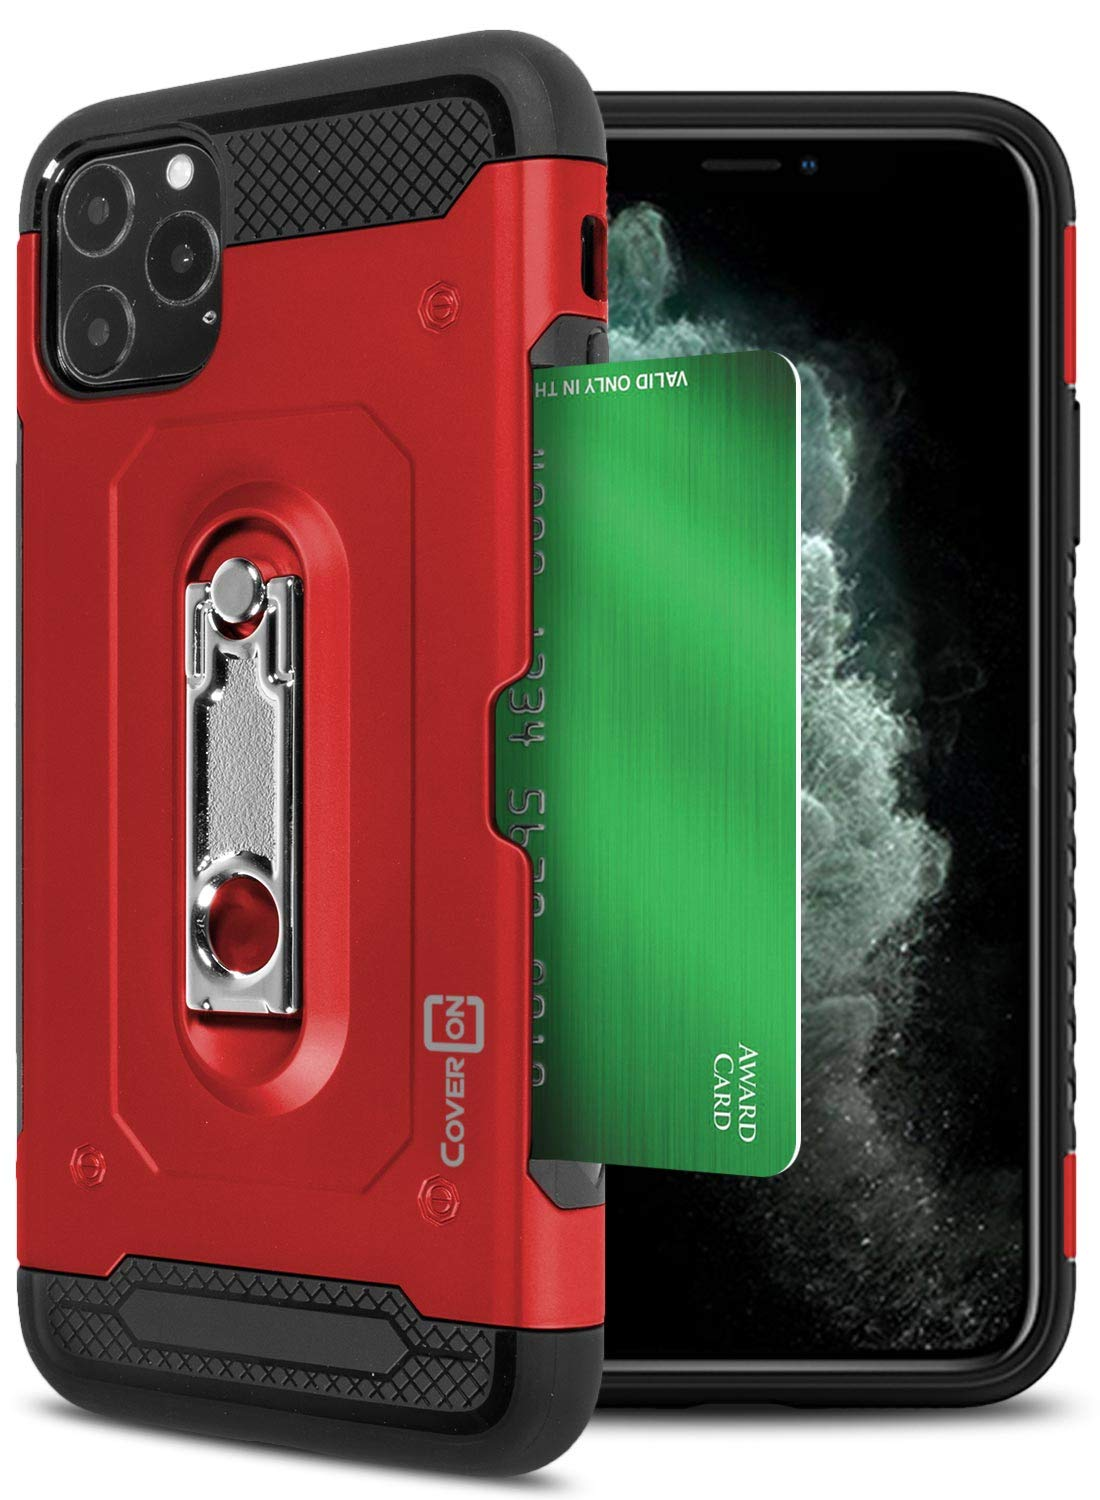 CoverON Kickstand Credit Card Holder Slot Zipp Series for iPhone 11 Pro Case, Red